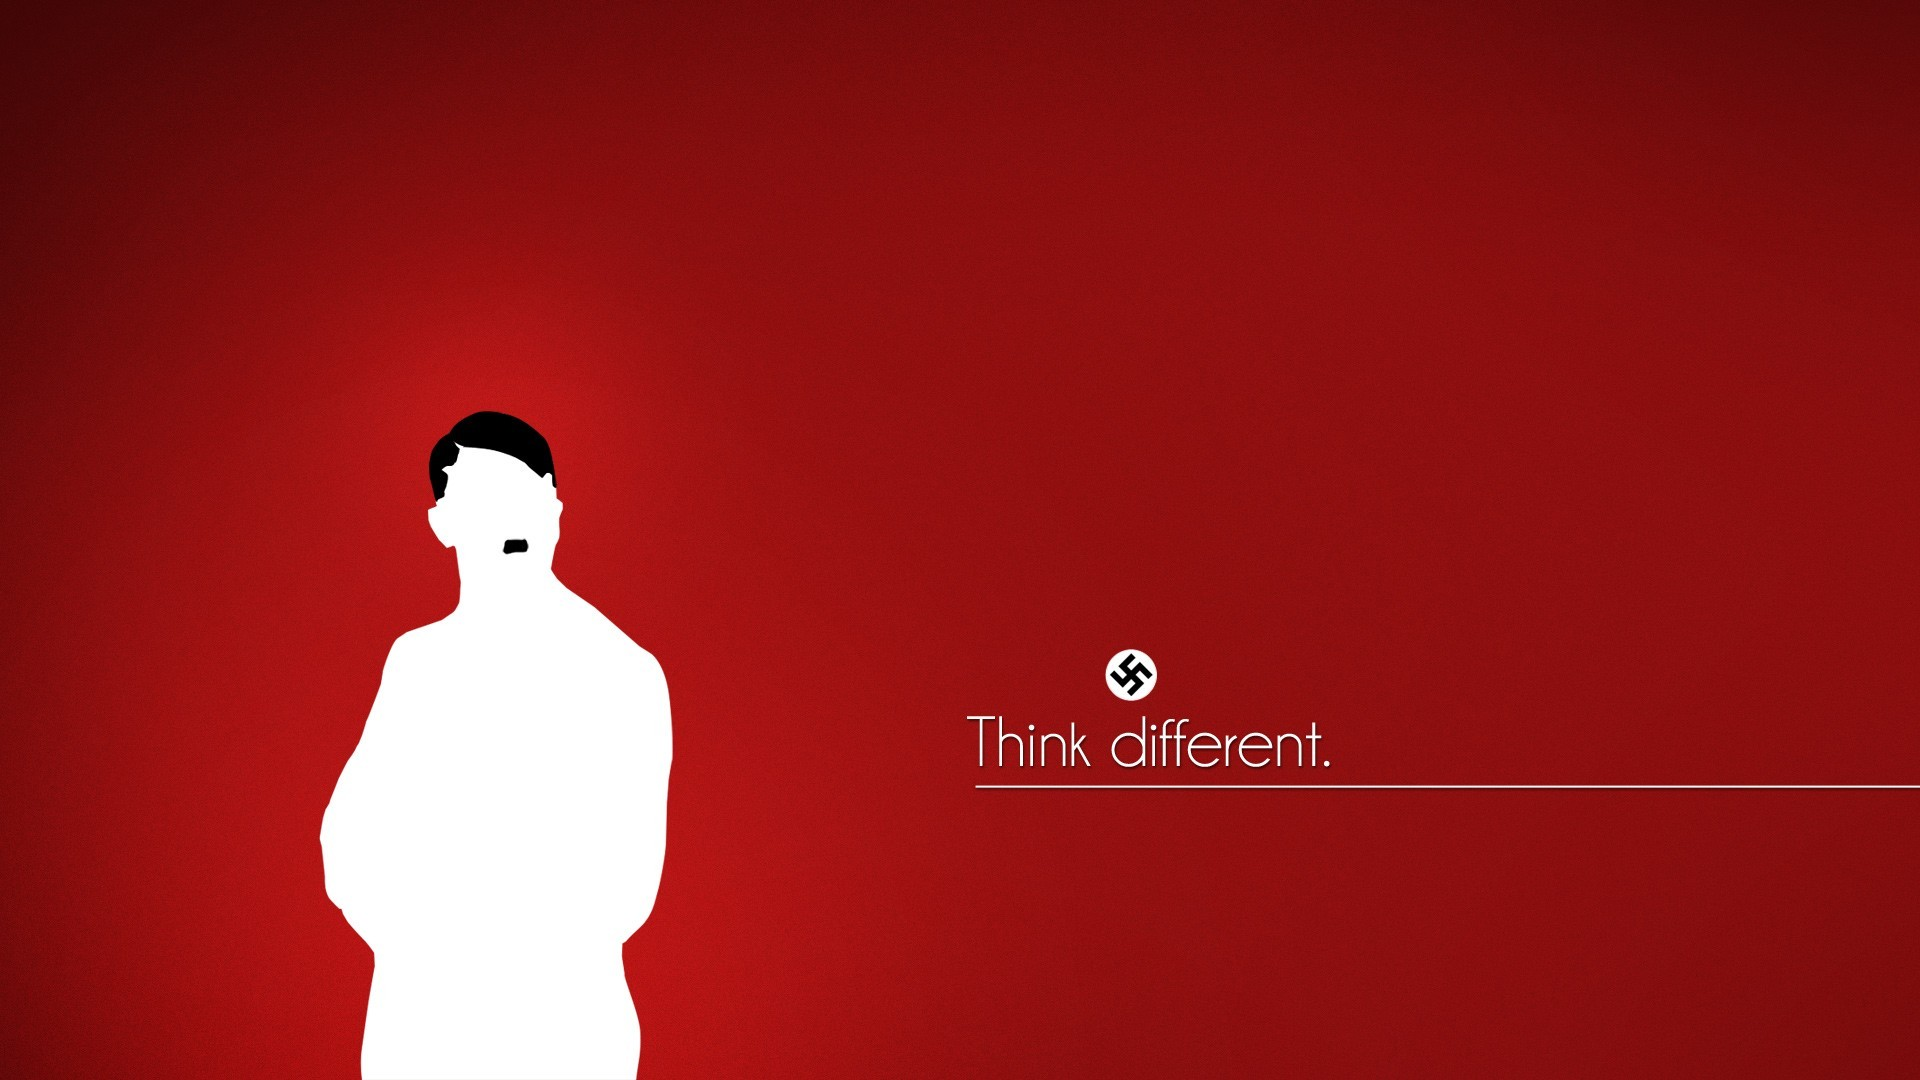 Minimalistic text nazi adolf hitler red background ...